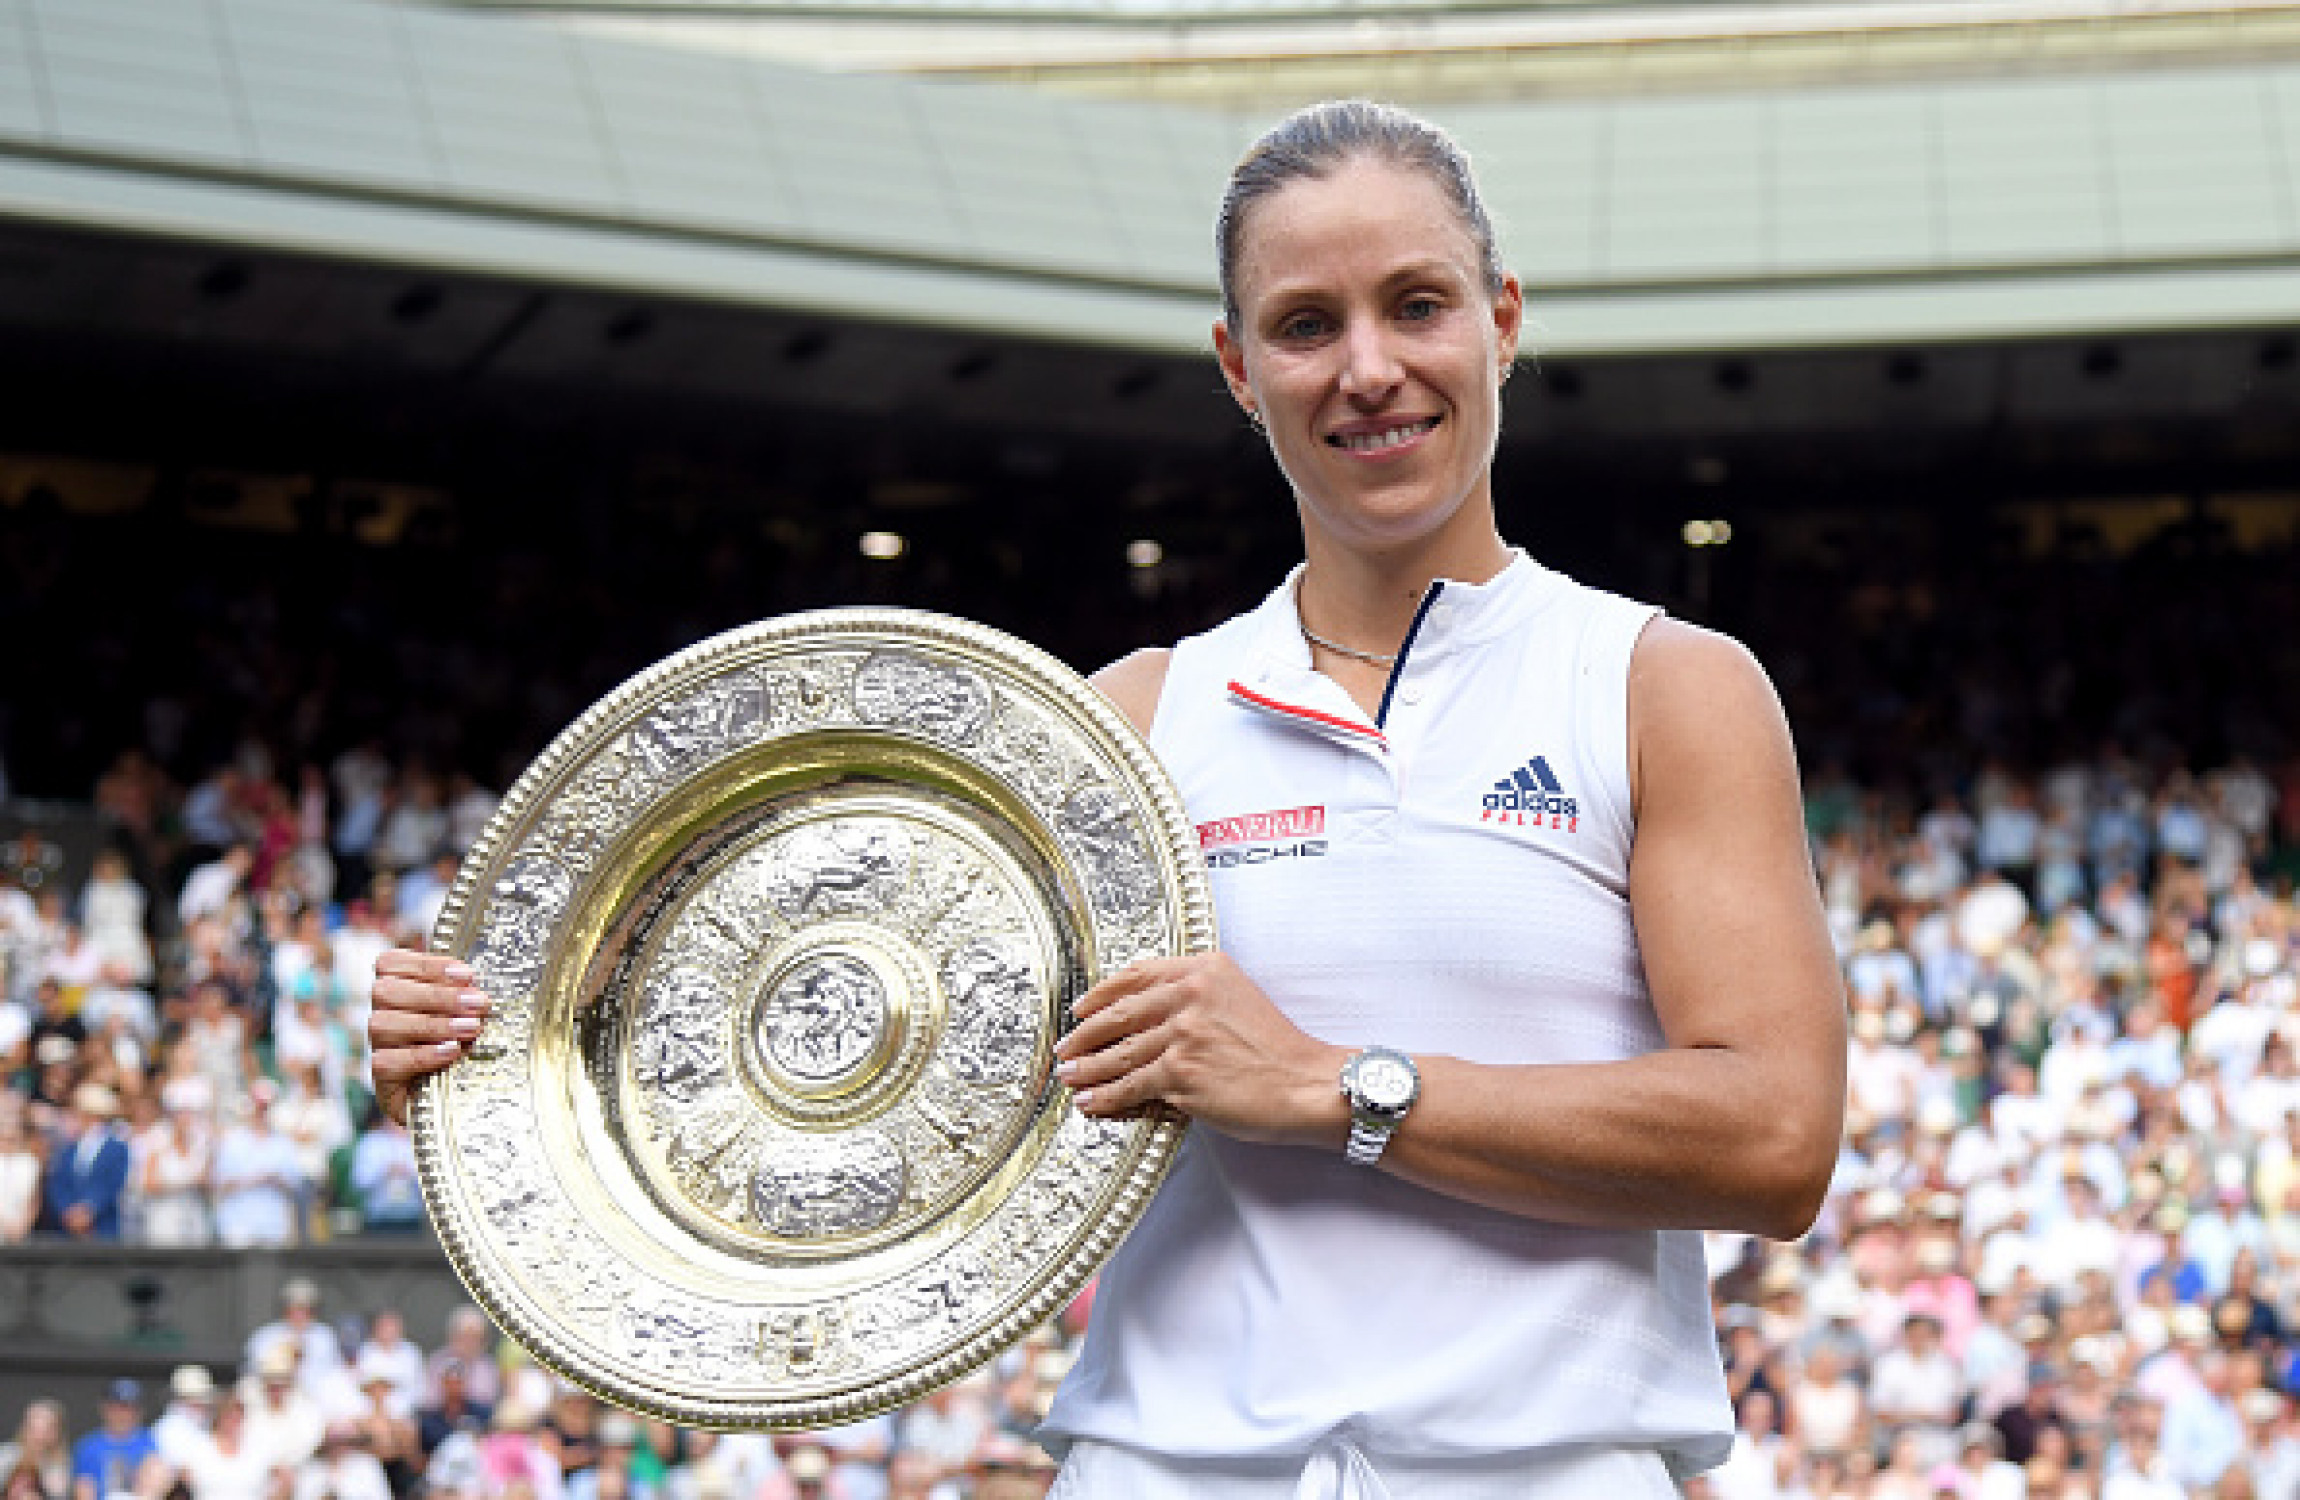 Forum on this topic: Clairette Oddera, angelique-kerber-3-grand-slam-singles-titles/